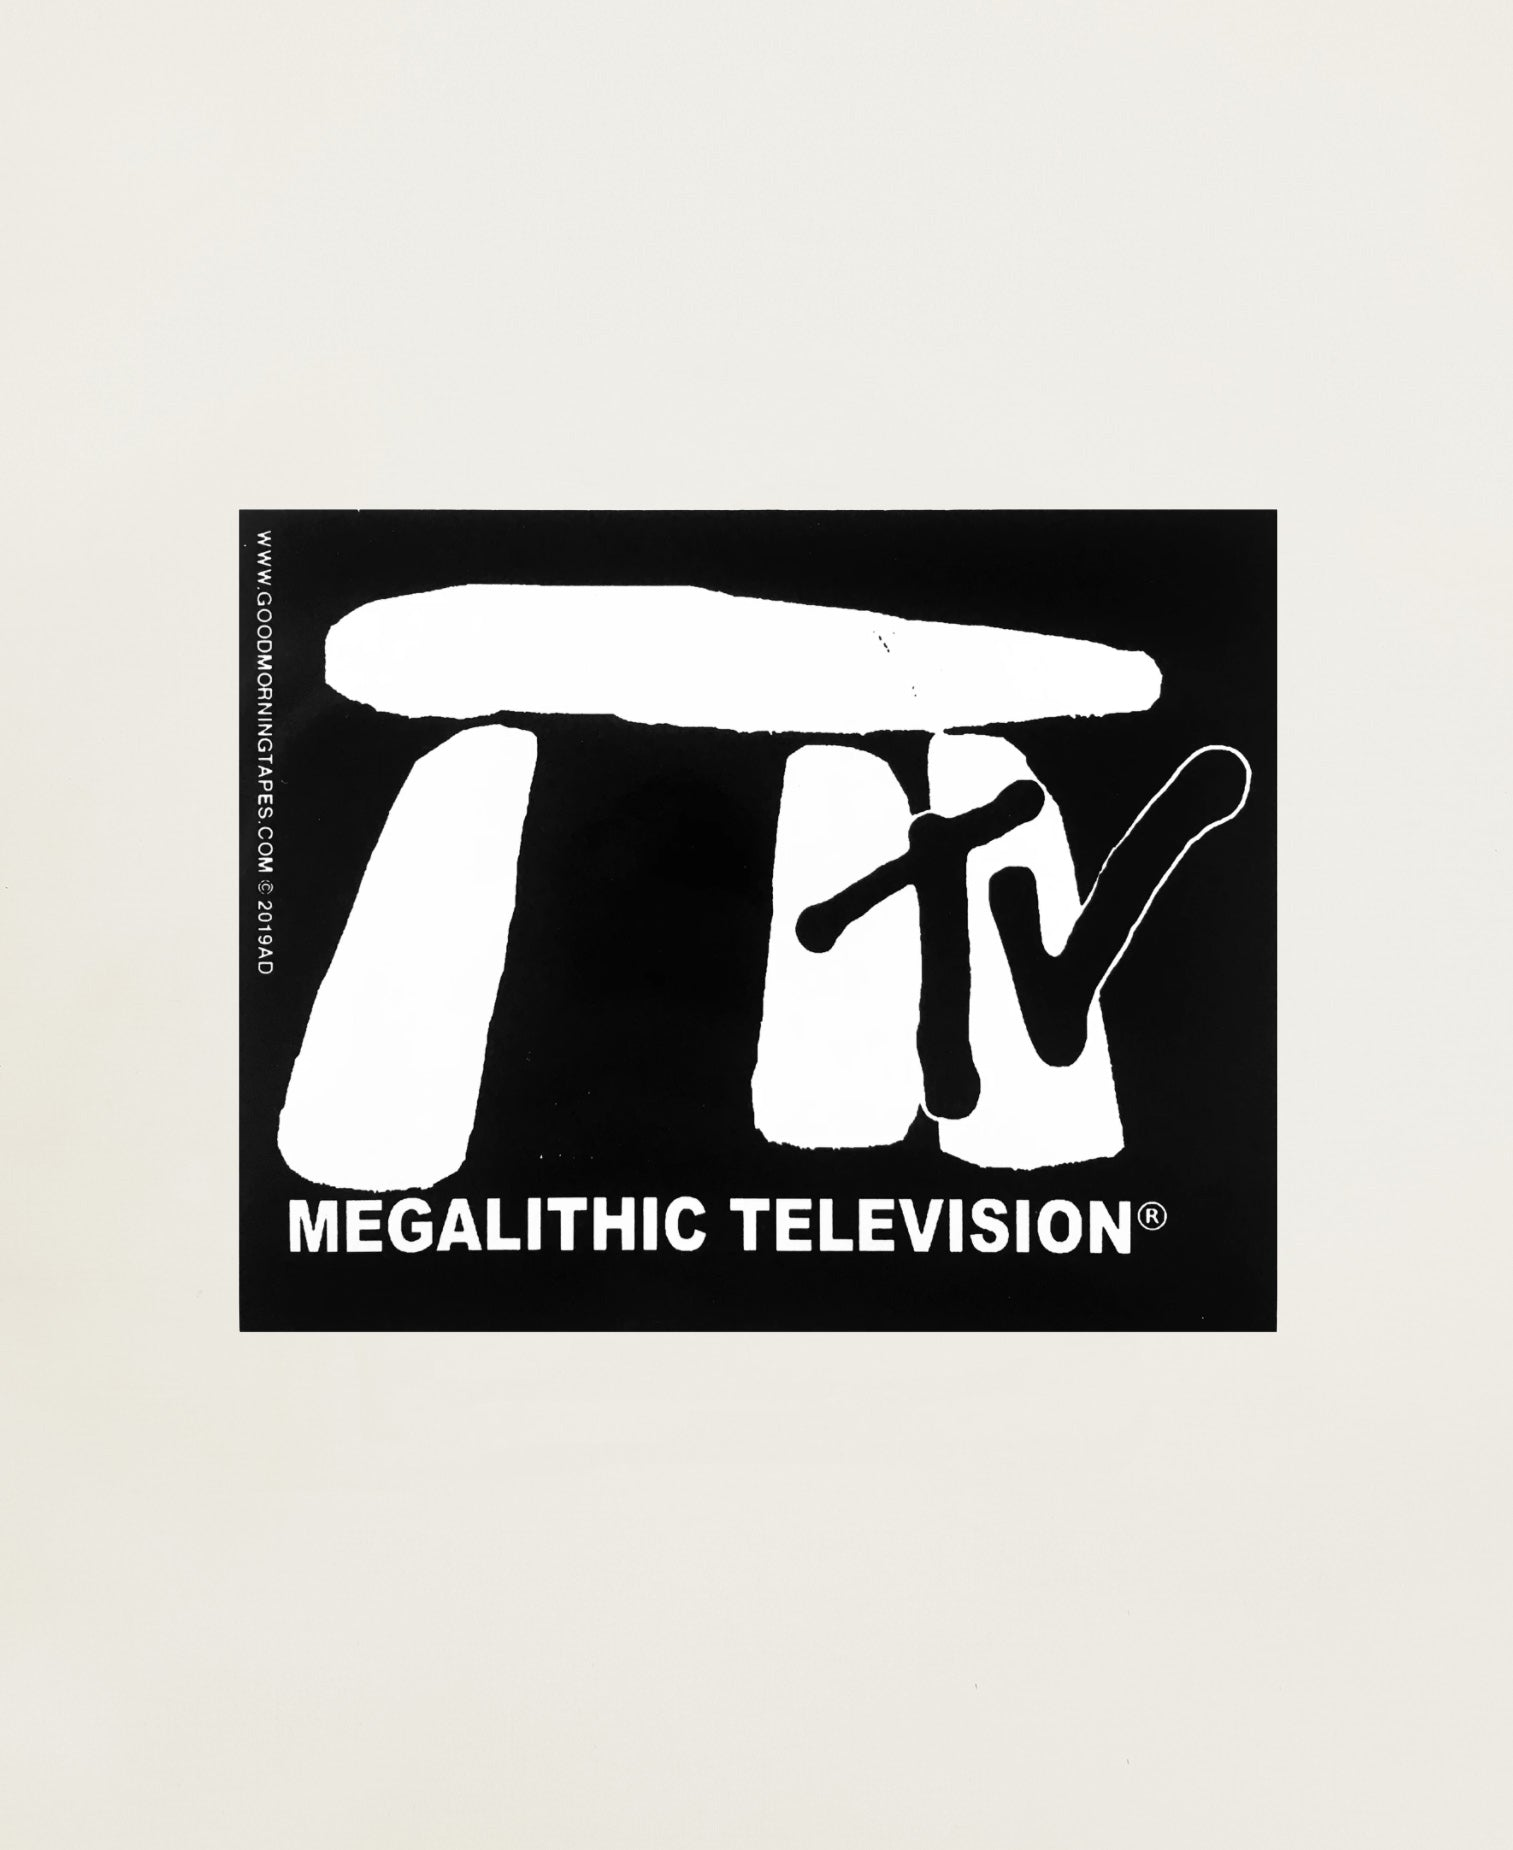 MEGALITHIC TV BUMPER STICKER - BLACK